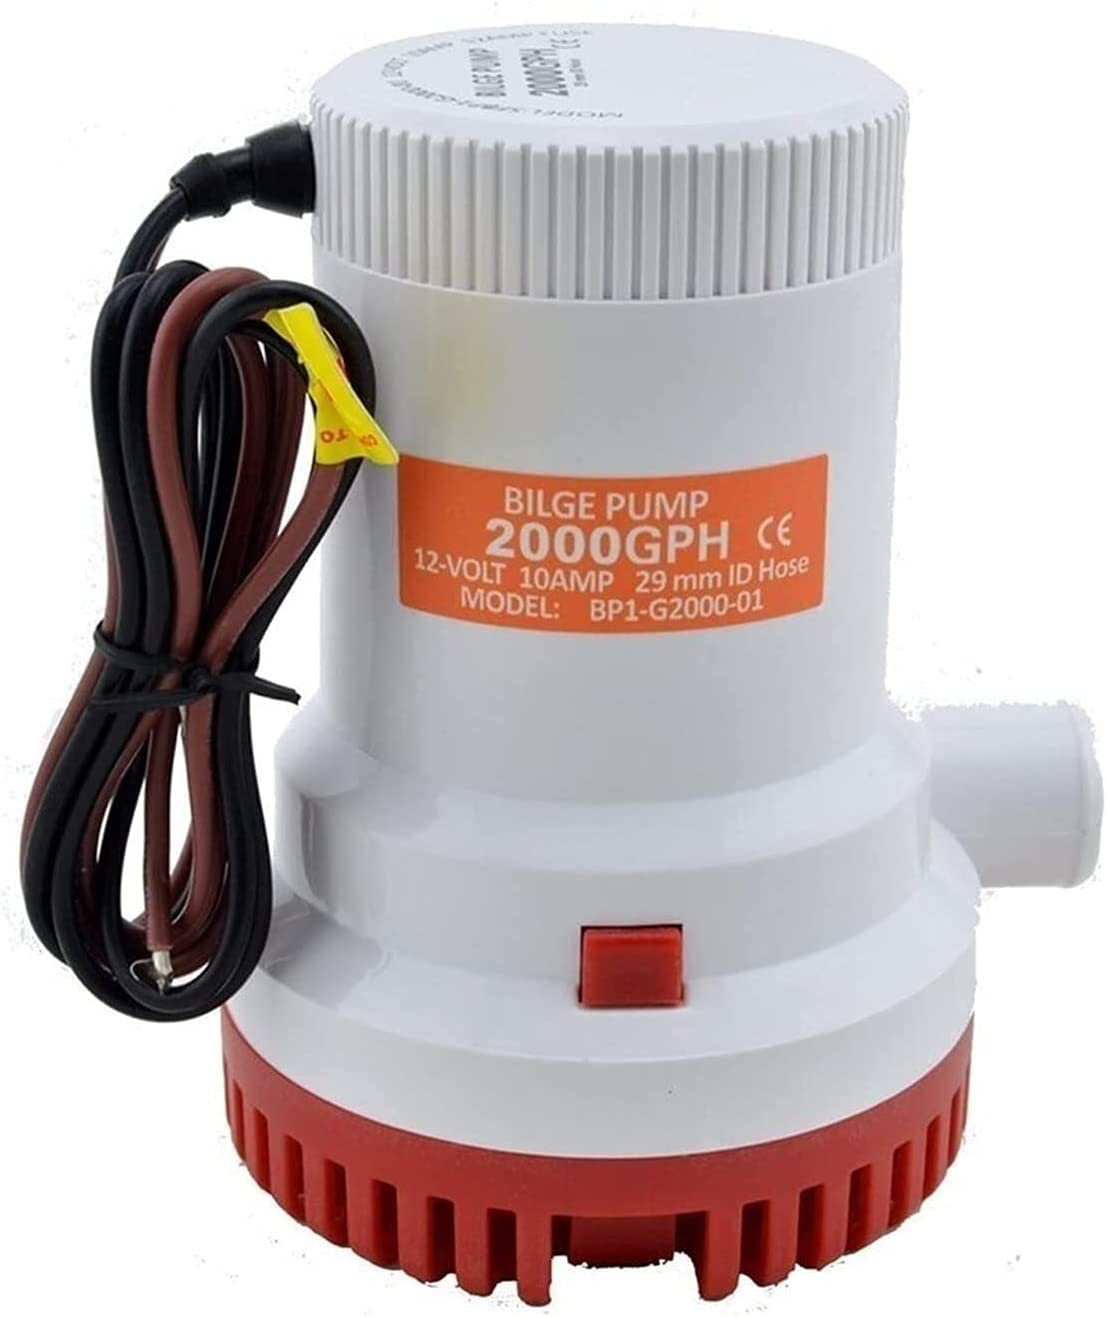 DAYDAY helper Automatic Submersible Direct sale of manufacturer Small security MKBP Pump G Bilge Boat